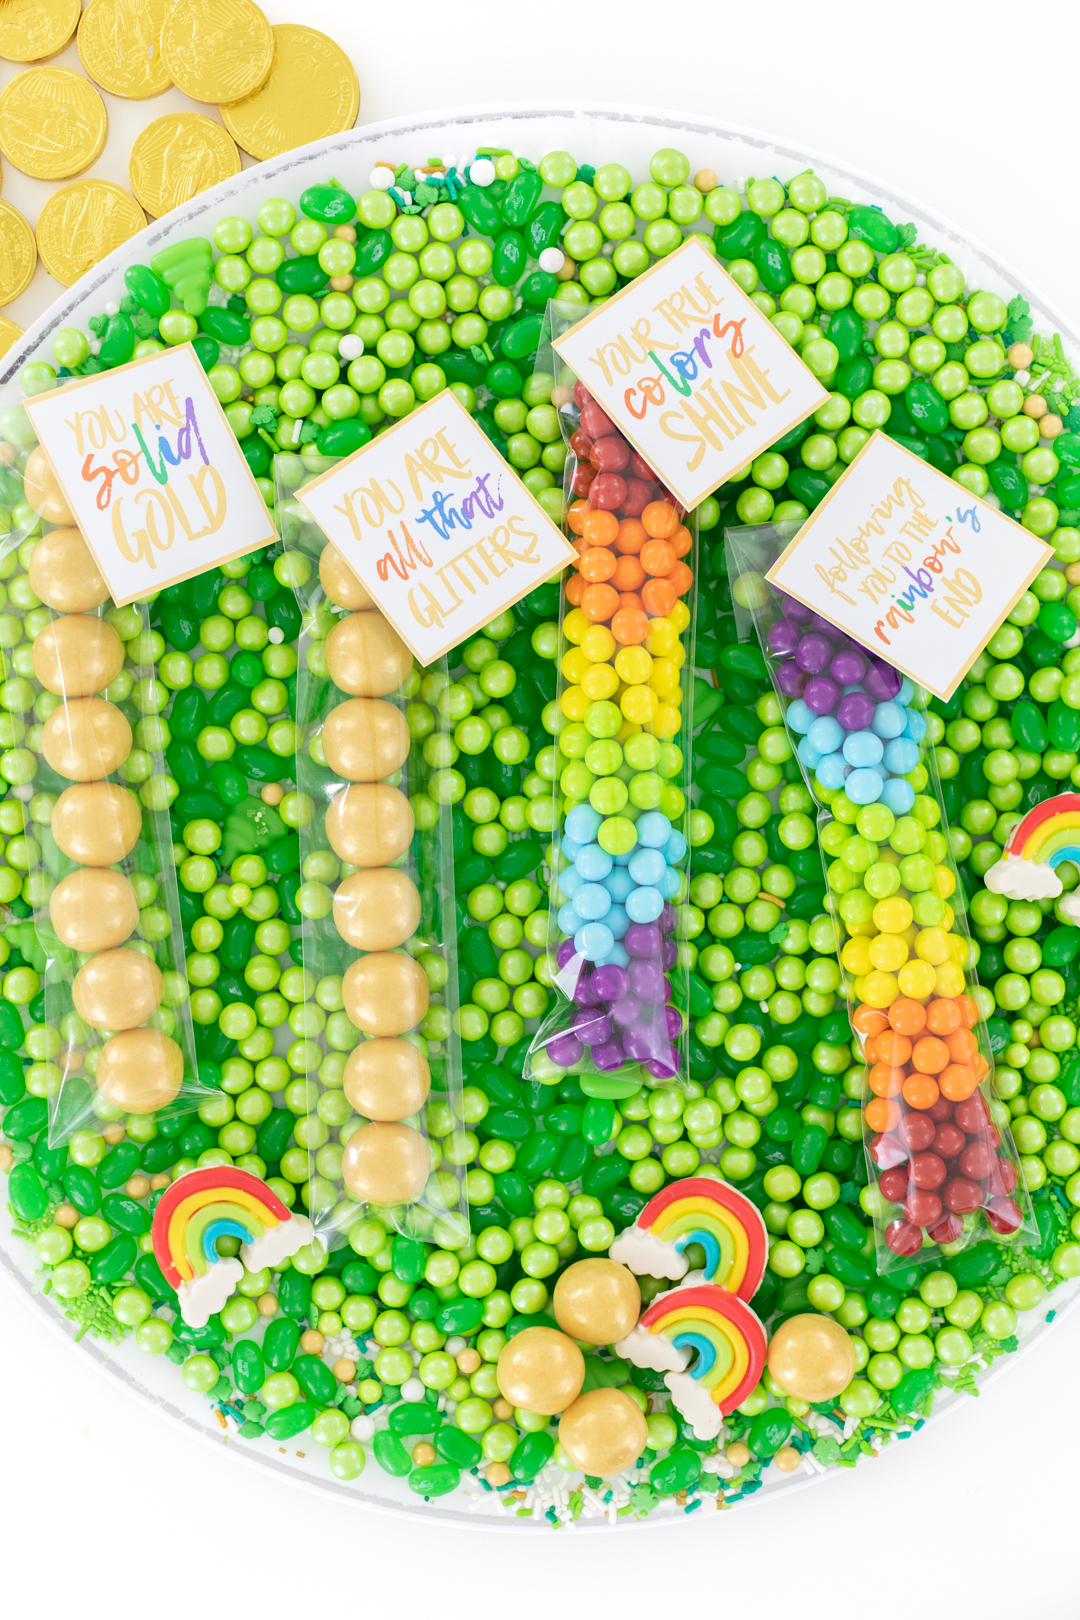 tray of st. patrick's day favors